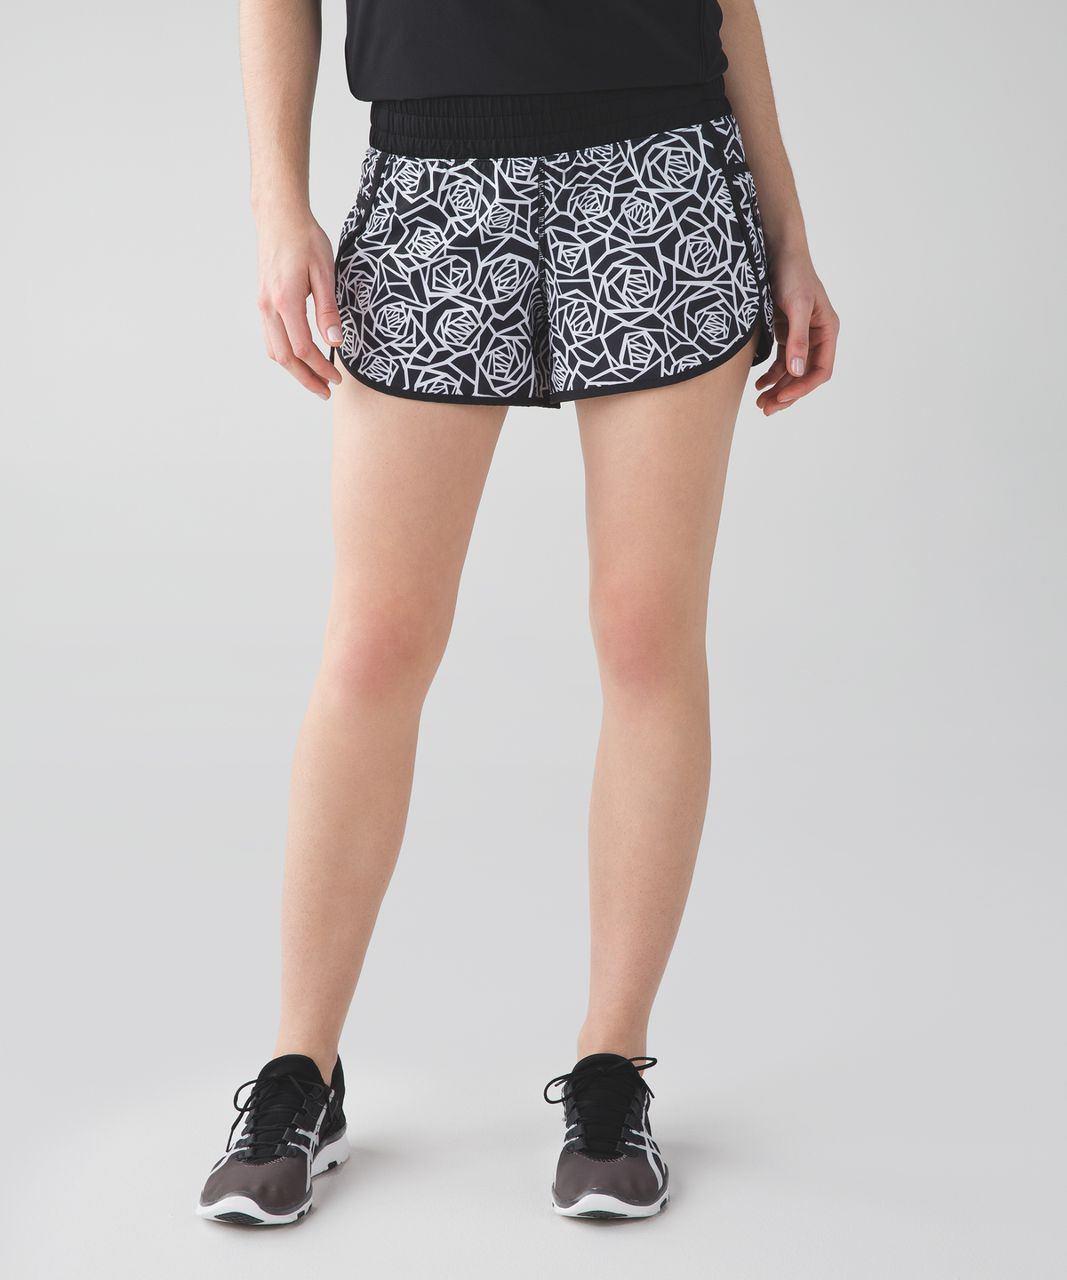 Lululemon Tracker Short III *4-way Stretch - Posey Black White / Black